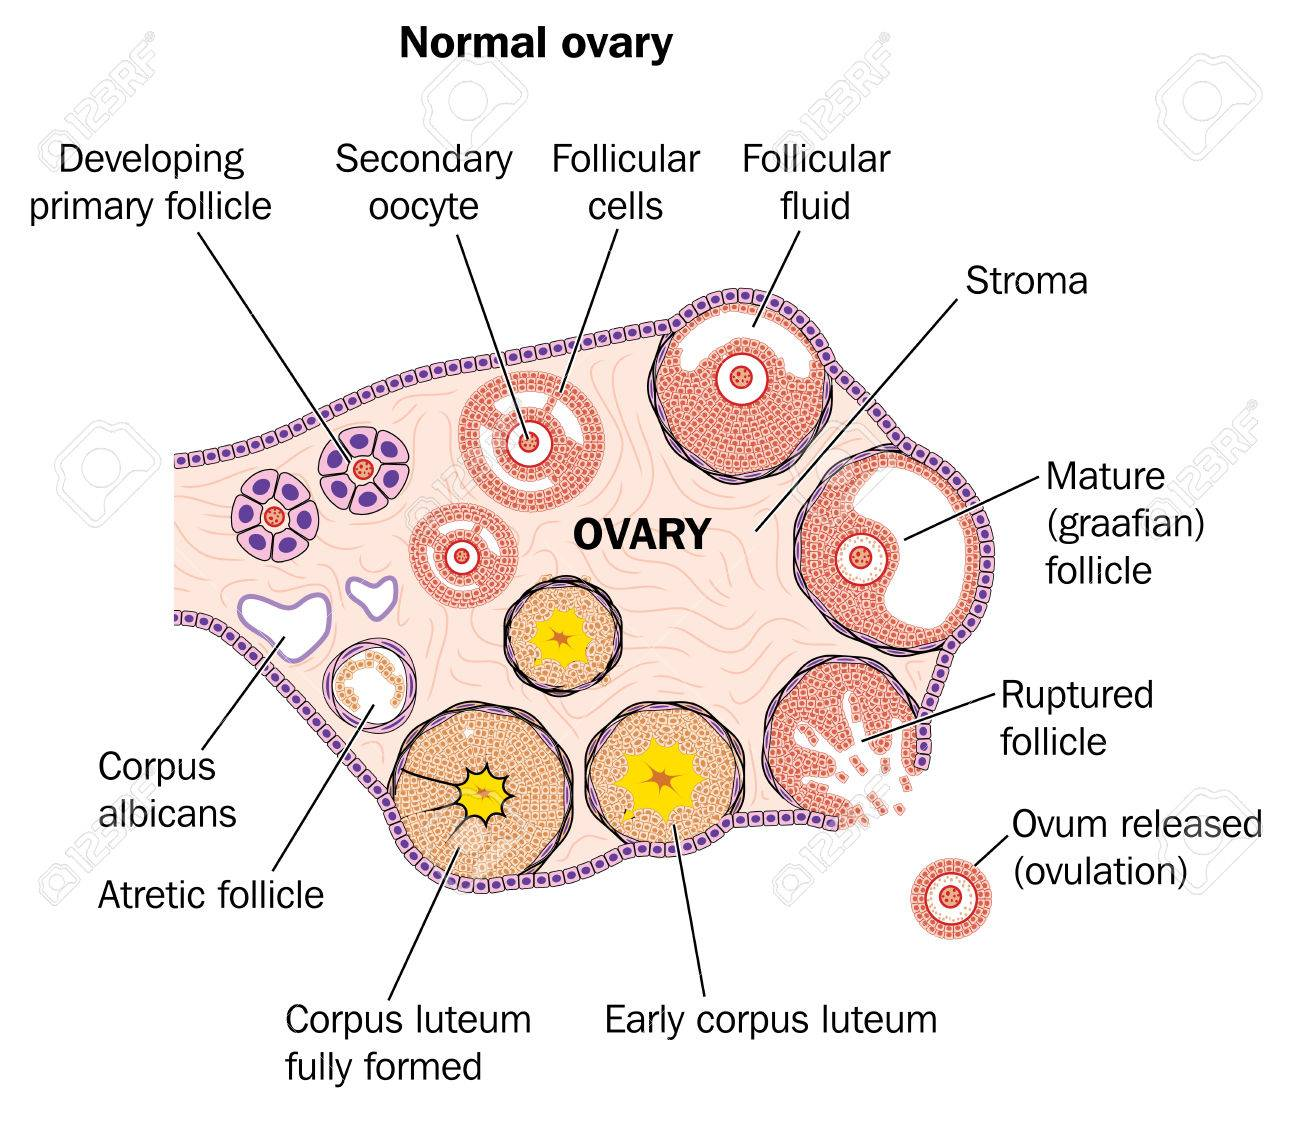 hight resolution of cross section through a normal ovary showing developing follicles and ovum release stock vector 78261539